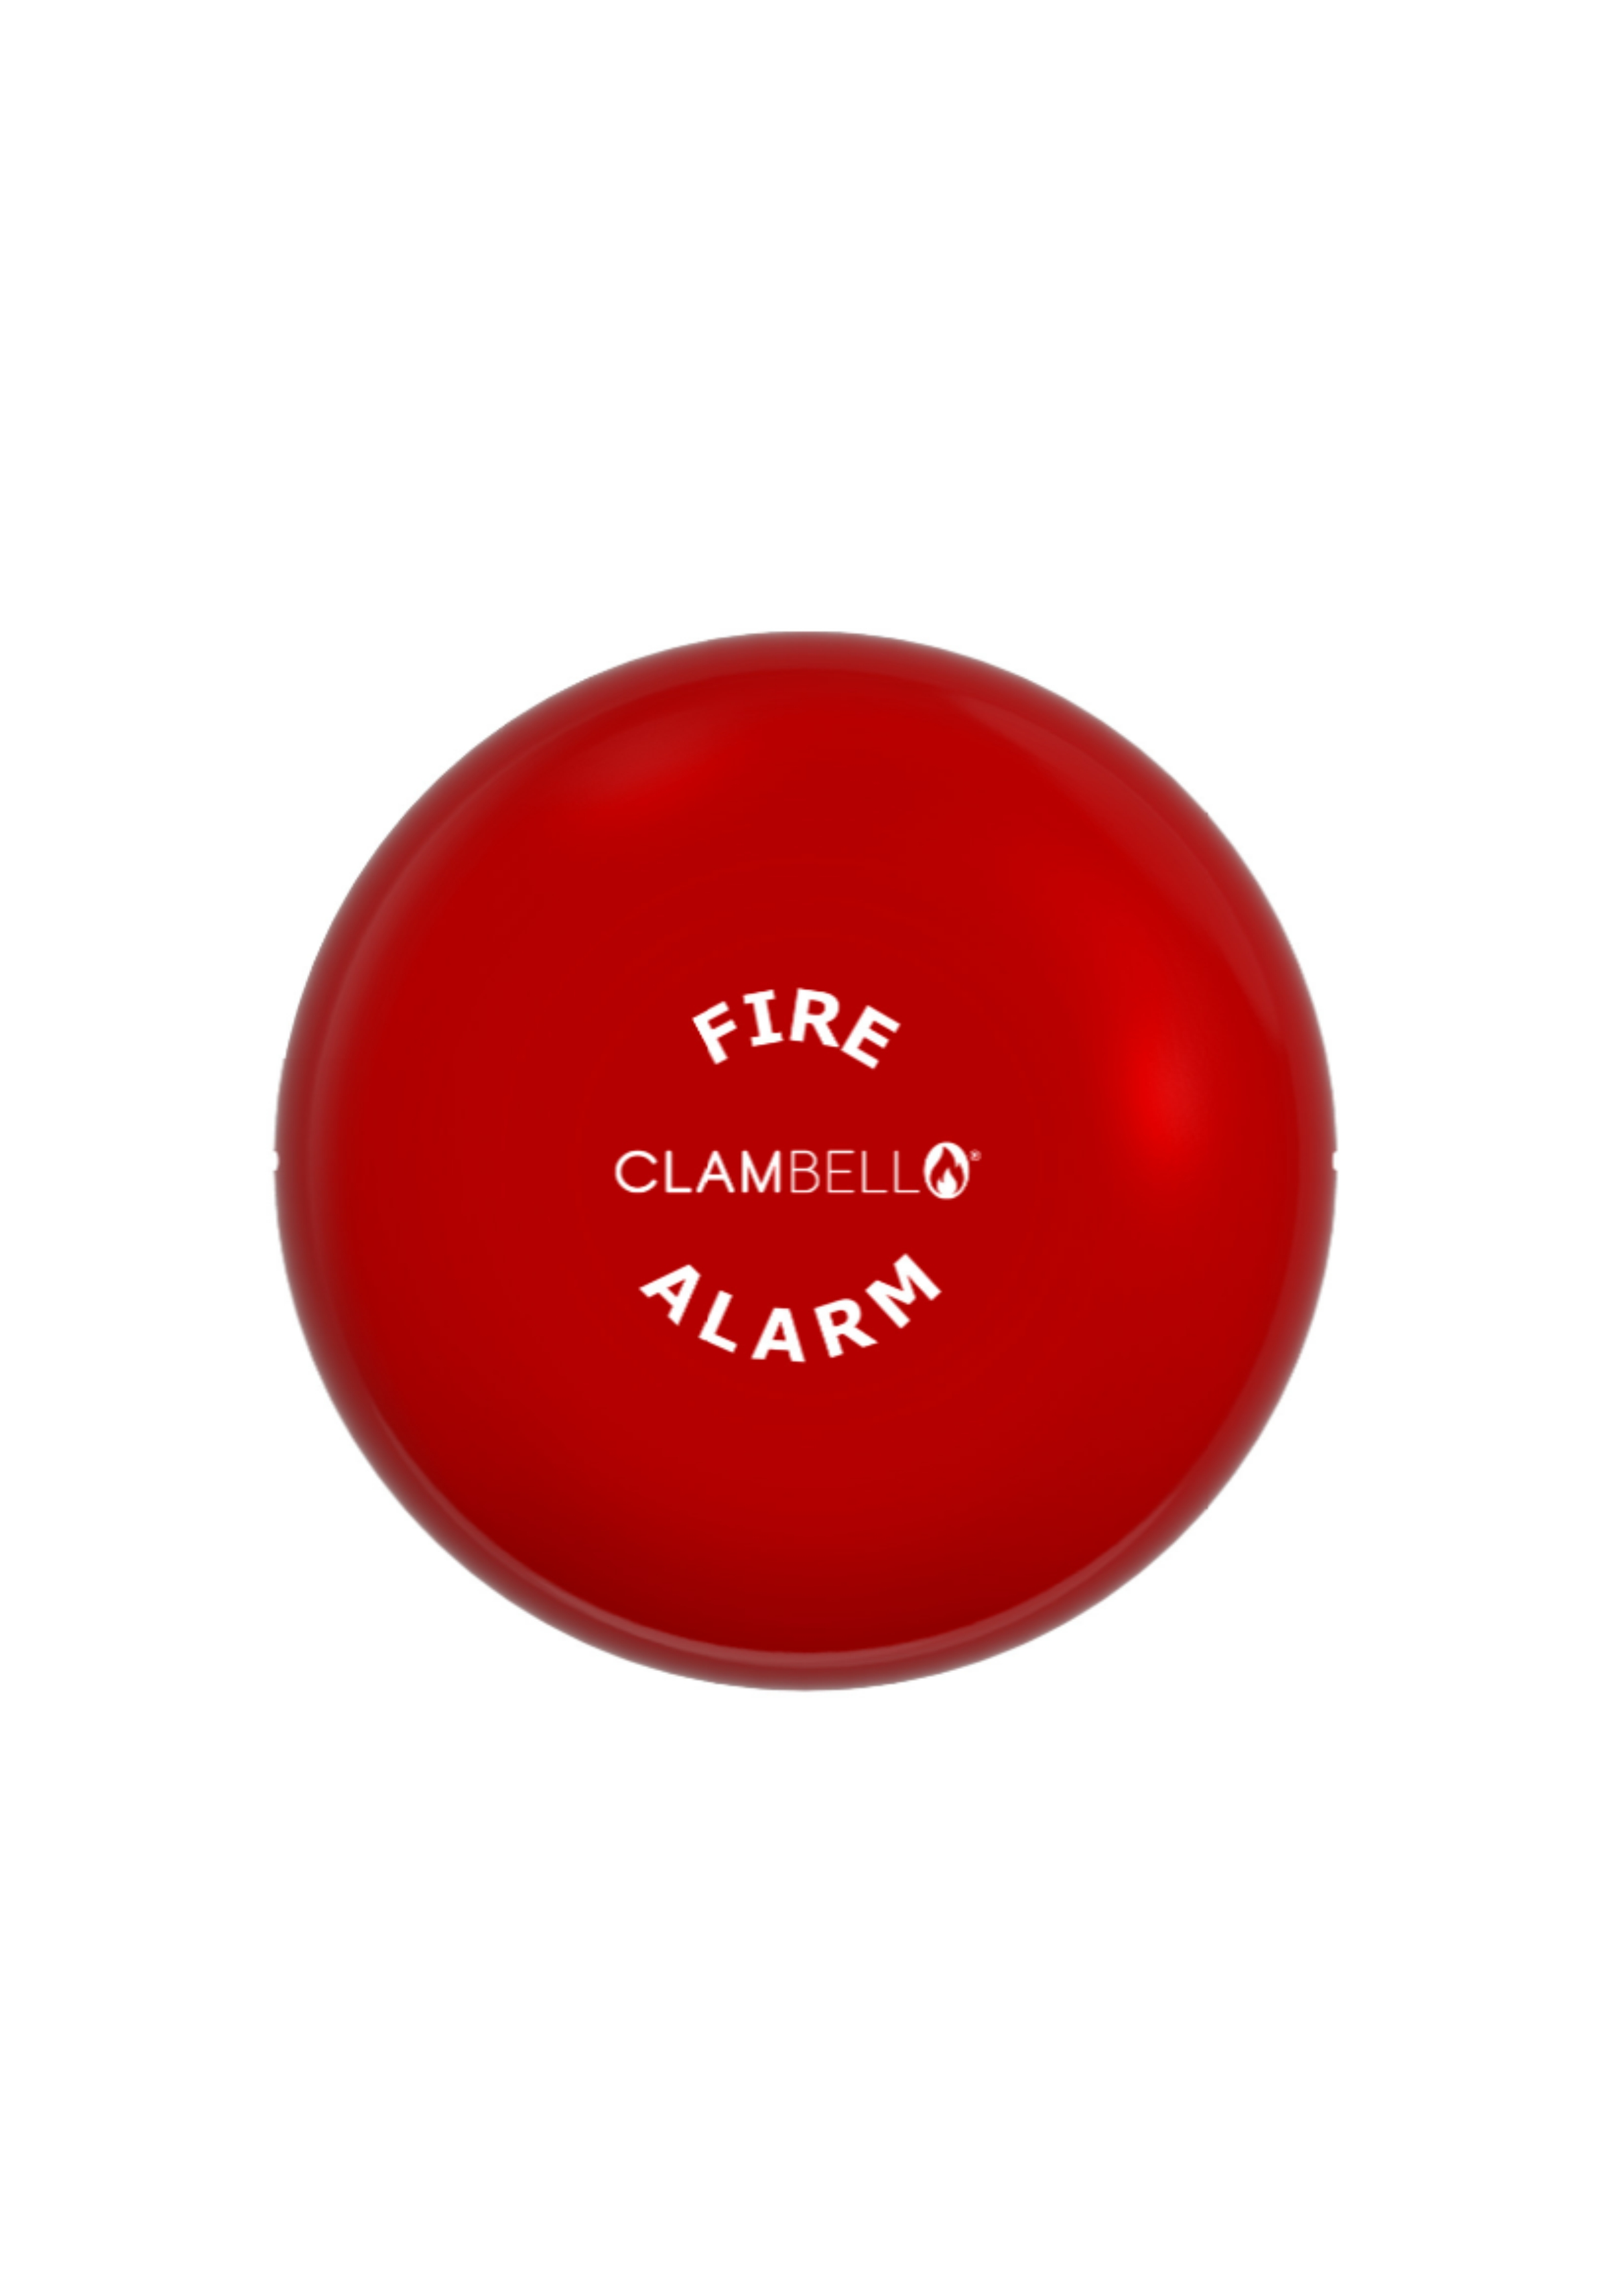 ClamBell 24V 6 Inch Fire Alarm Bell - Weatherproof...